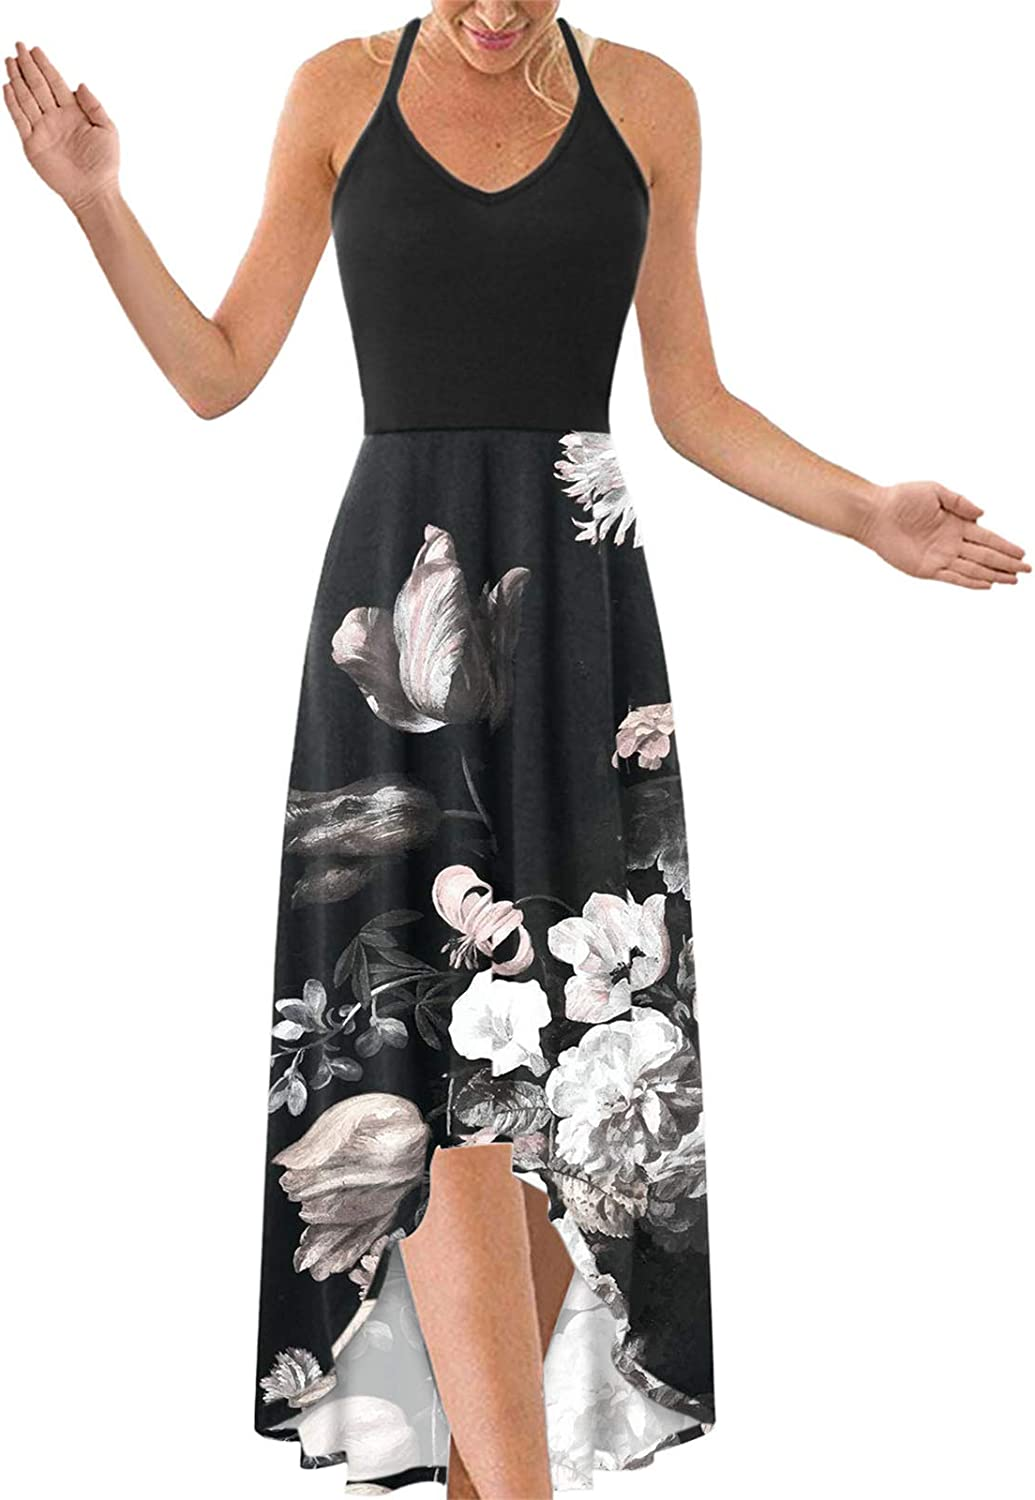 Dresses for Women Casual, Women's Fashion Casual V-Neck Sleeveless Strap Open Back Sexy Printing Dress